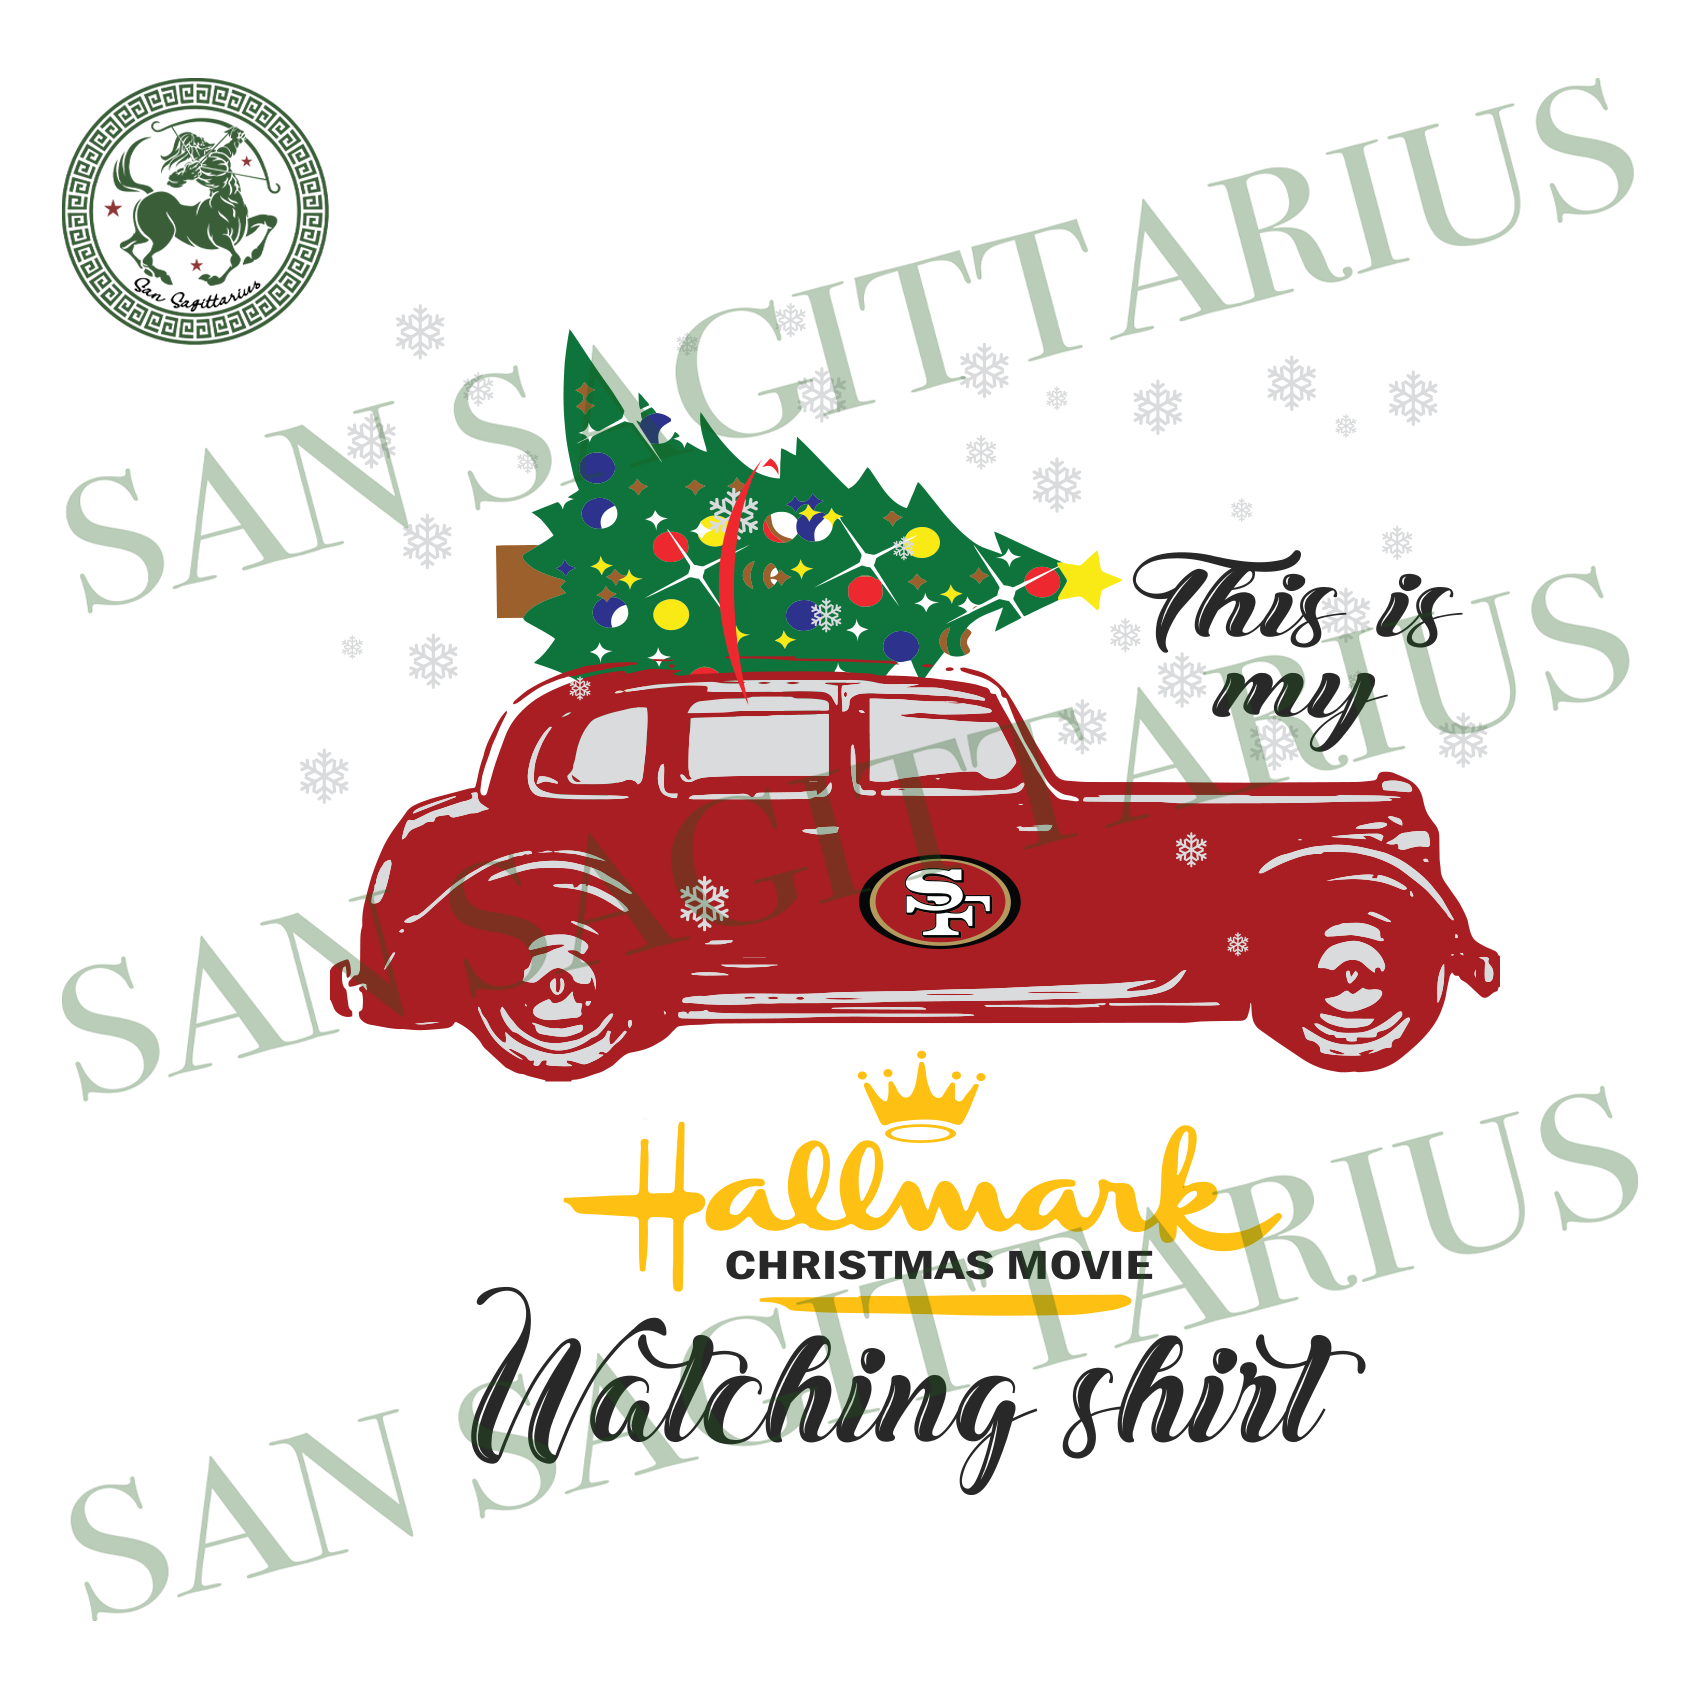 San Francisco 49er This Is My Hallmark Christmas Movie Watching Shirt, Sport Svg, Christmas Svg, San Francisco 49er Svg, NFL Sport Svg, San Francisco 49er NFL Svg, Football Svg, Football Shir